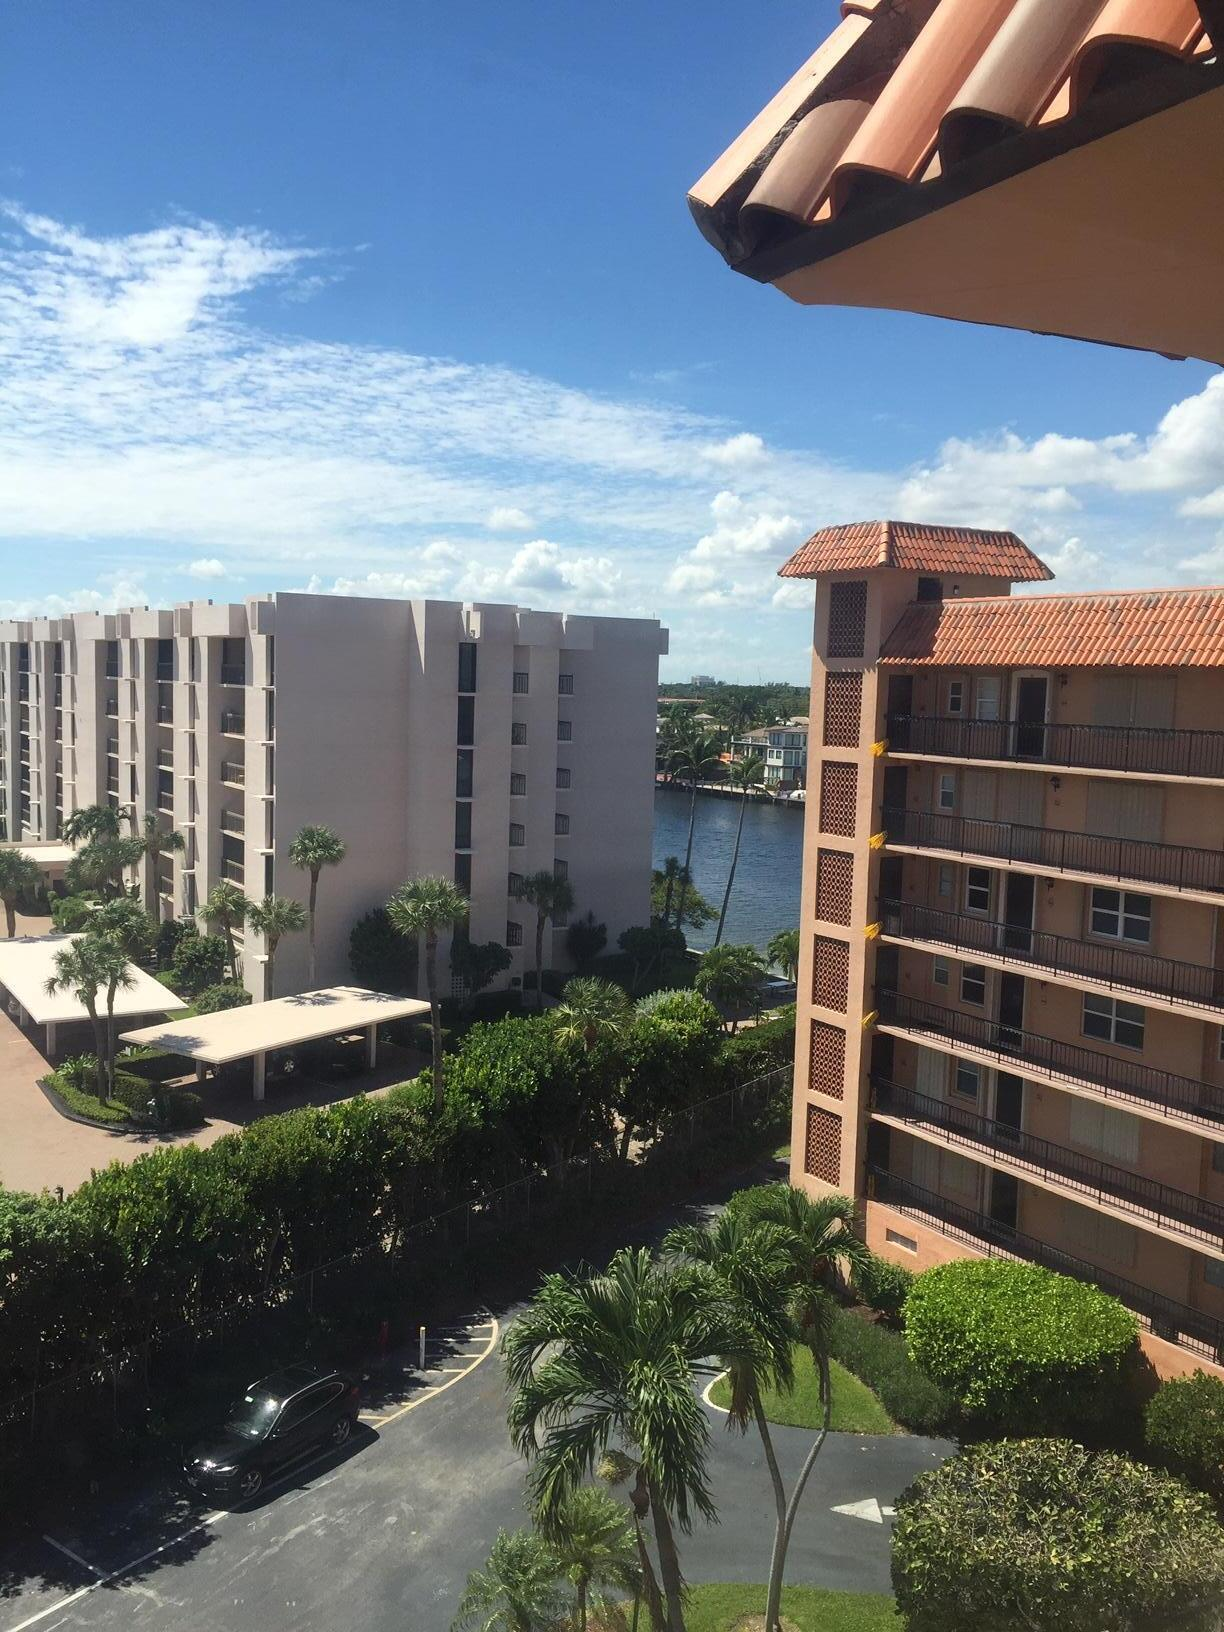 INTRACOASTAL VIEW THROUGH BUILDINGS FROM